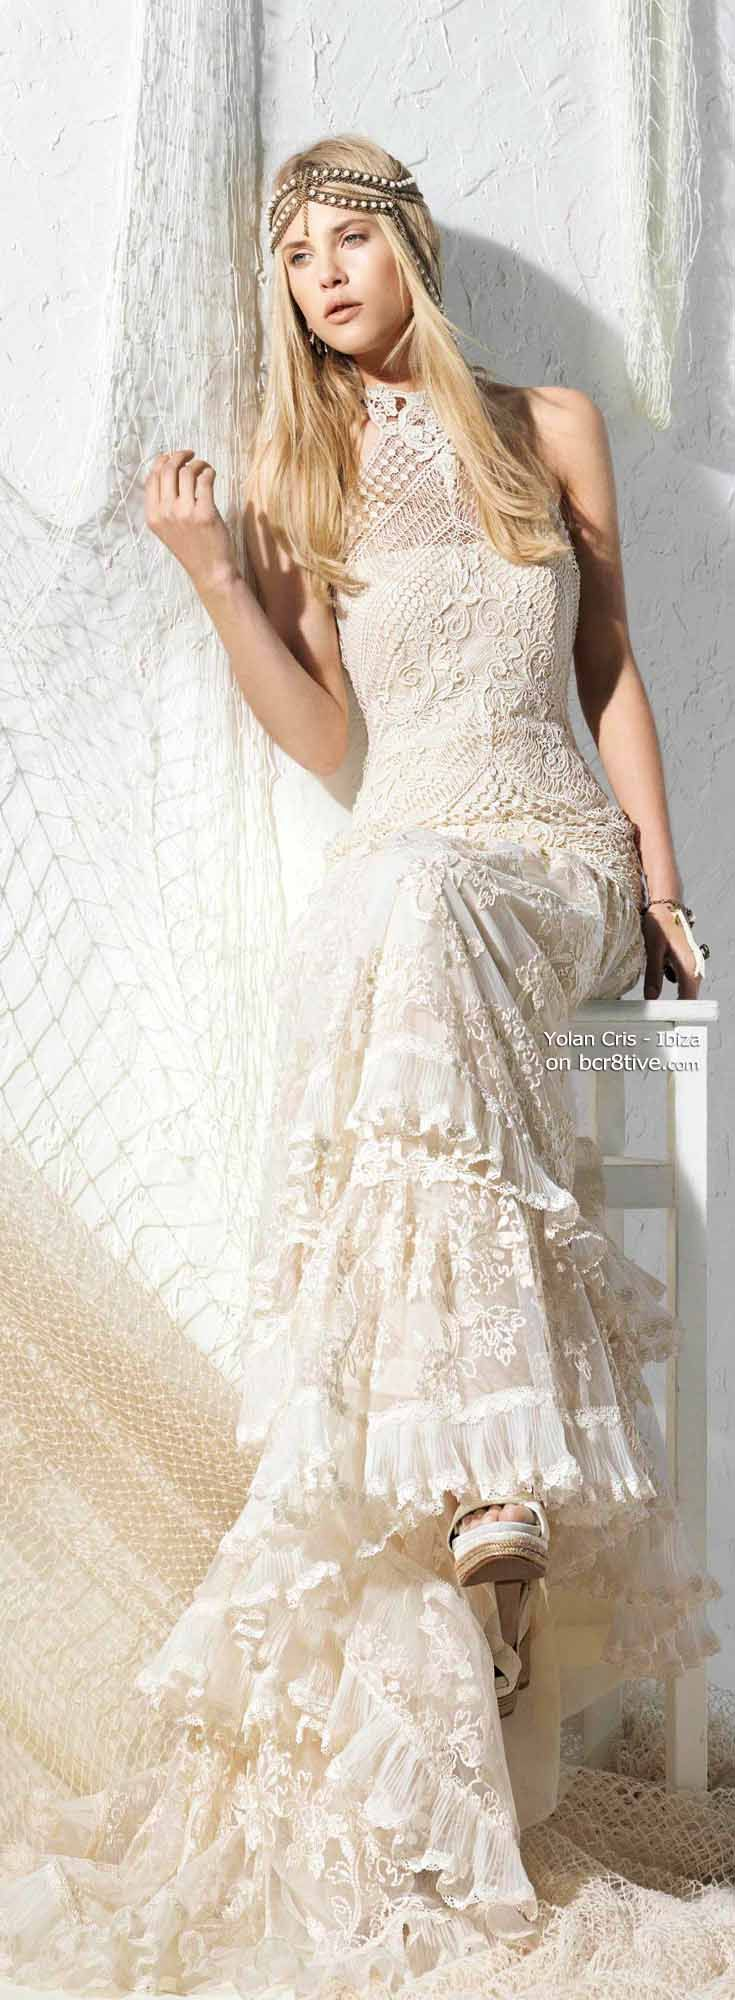 Yolan Cris Bridal Designs 2013 are all unique & gorgeous but I especially like these Bohemian Chic Styles full of crochet, lace & fishnet